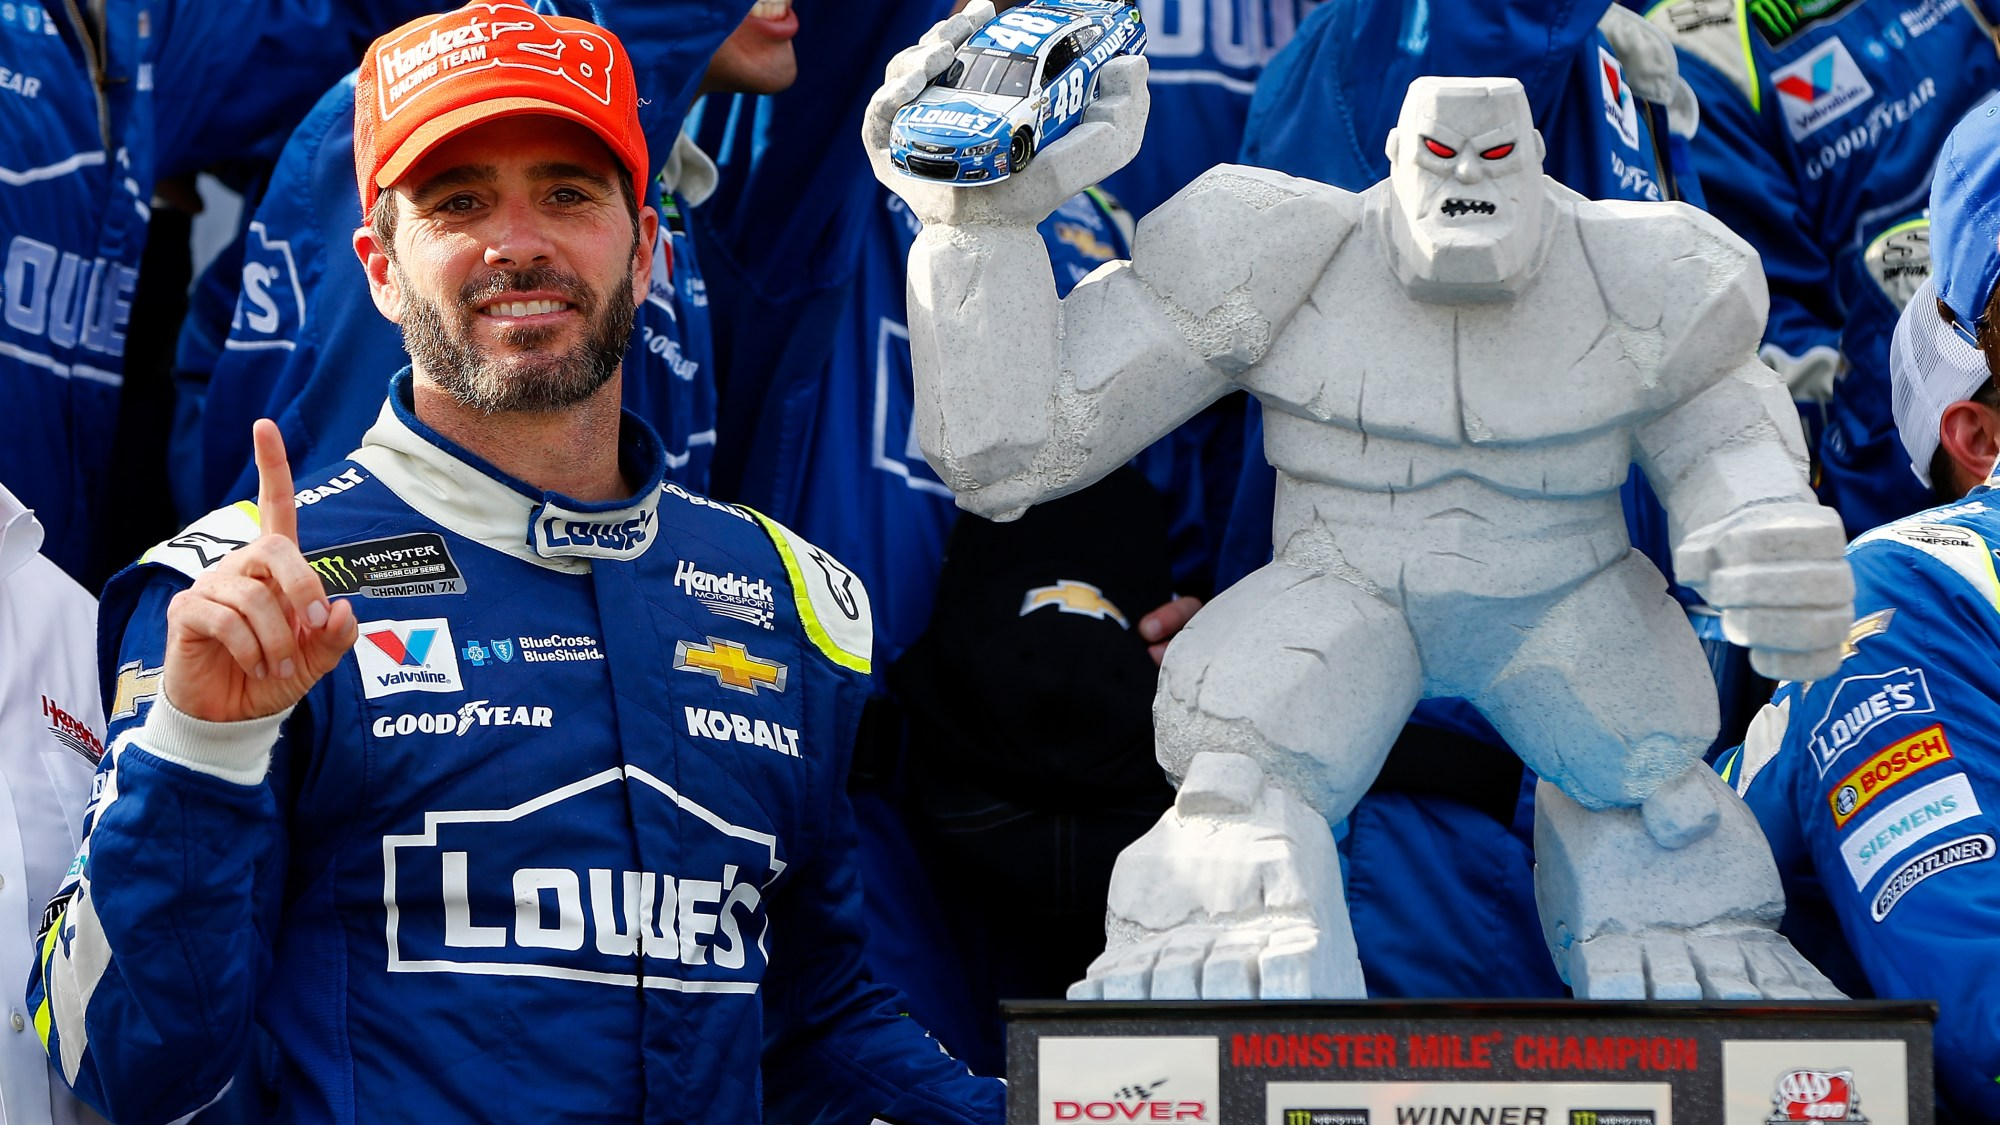 DOVER, DE - JUNE 04: Jimmie Johnson, driver of the #48 Lowe's Chevrolet, celebrates in Victory Lane after winning the Monster Energy NASCAR Cup Series AAA 400 Drive for Autism at Dover International Speedway on June 4, 2017 in Dover, Delaware. (Photo by Jonathan Ferrey/Getty Images)